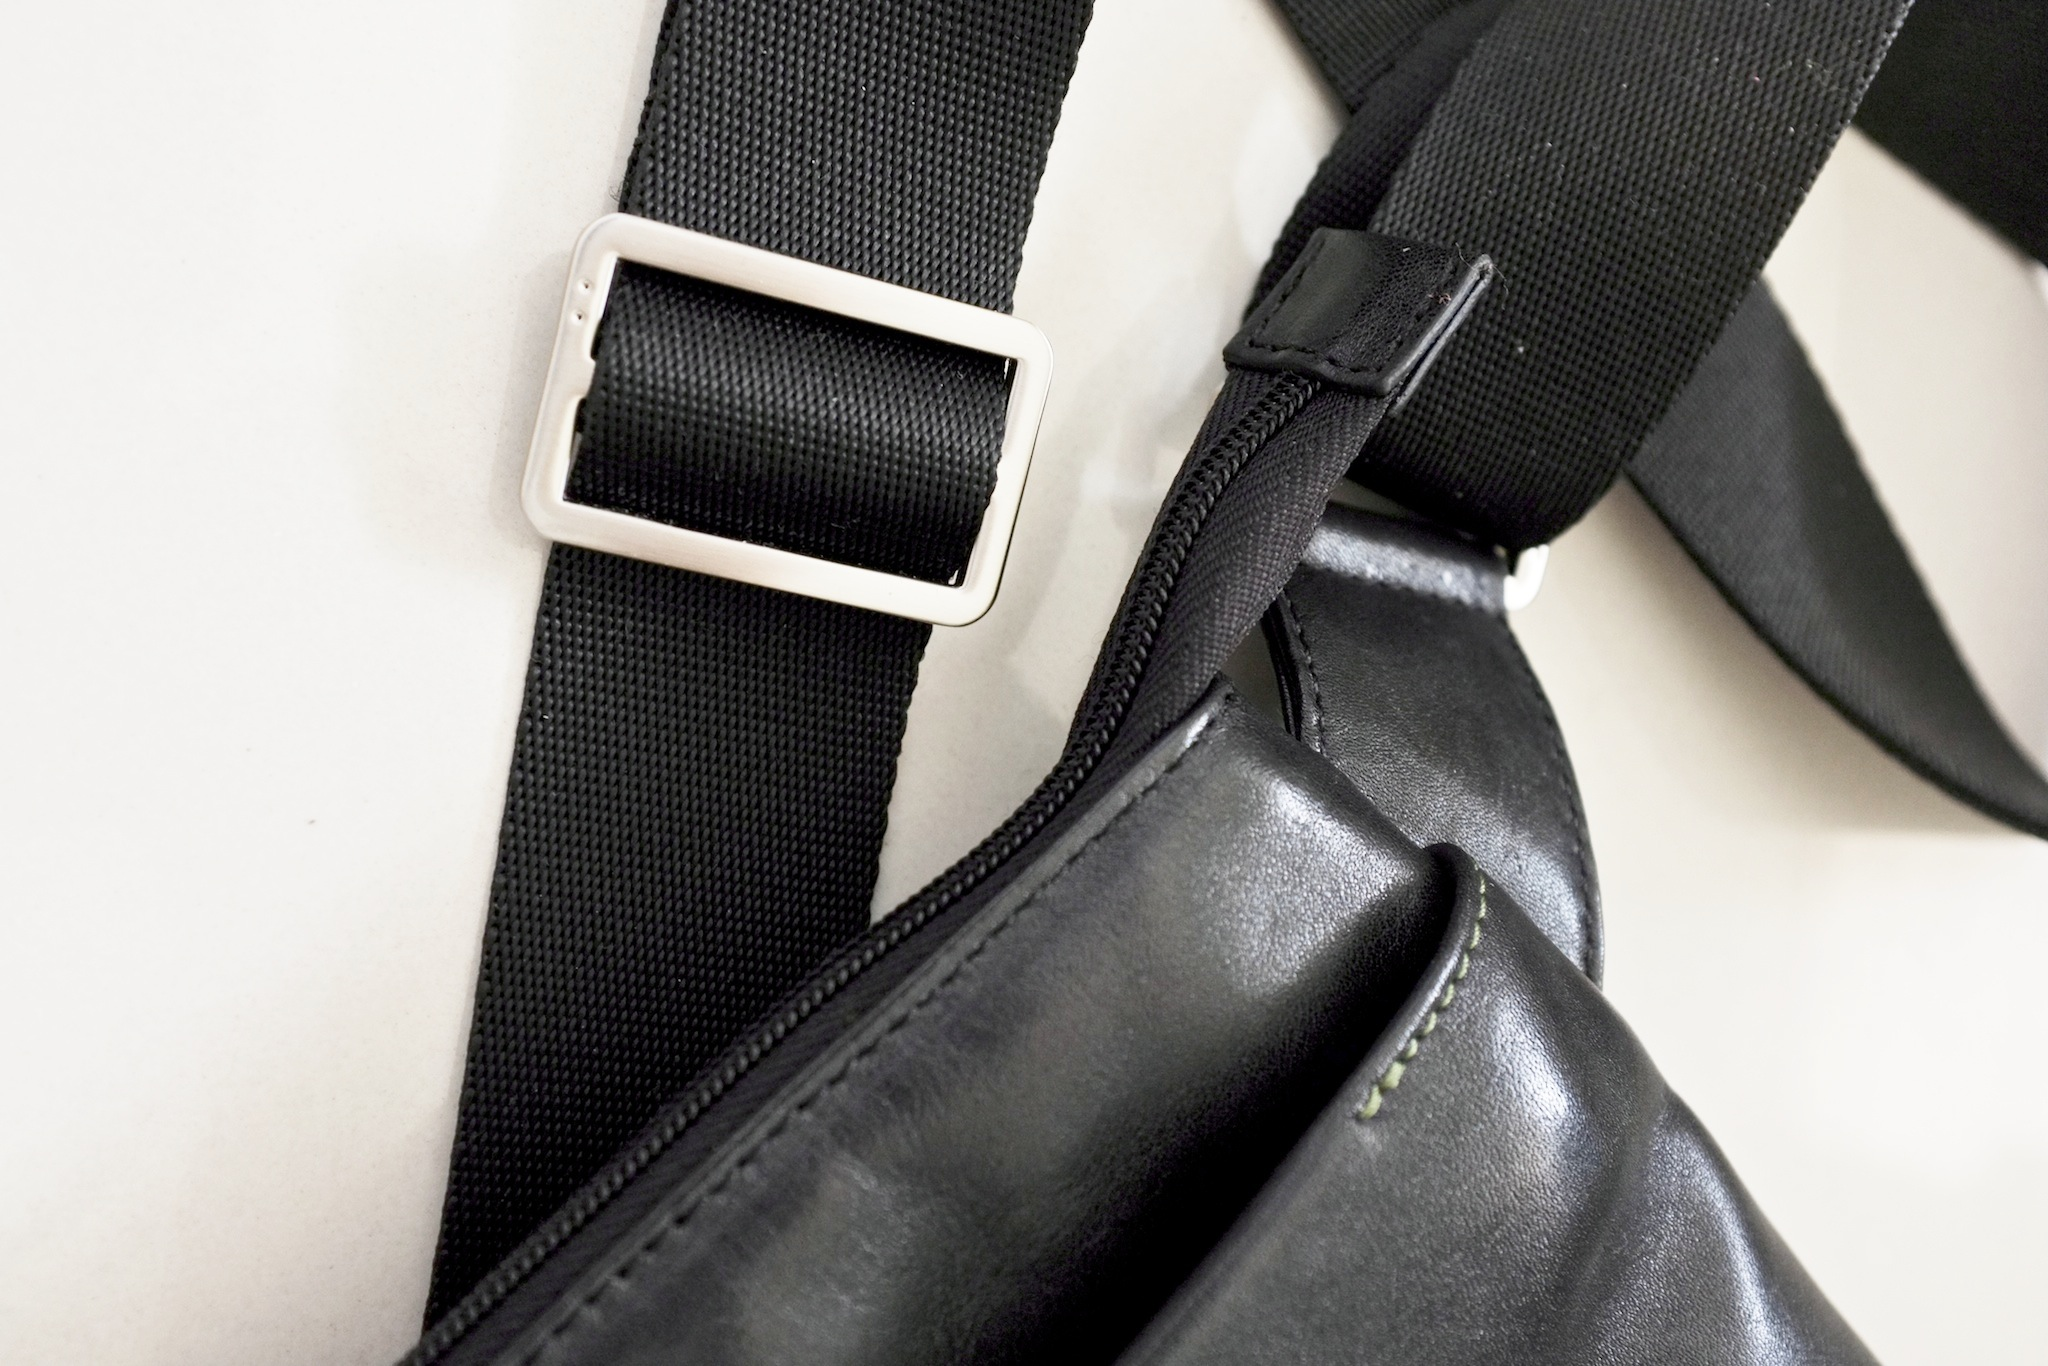 The bag has a broad strap which is comfortable to sling